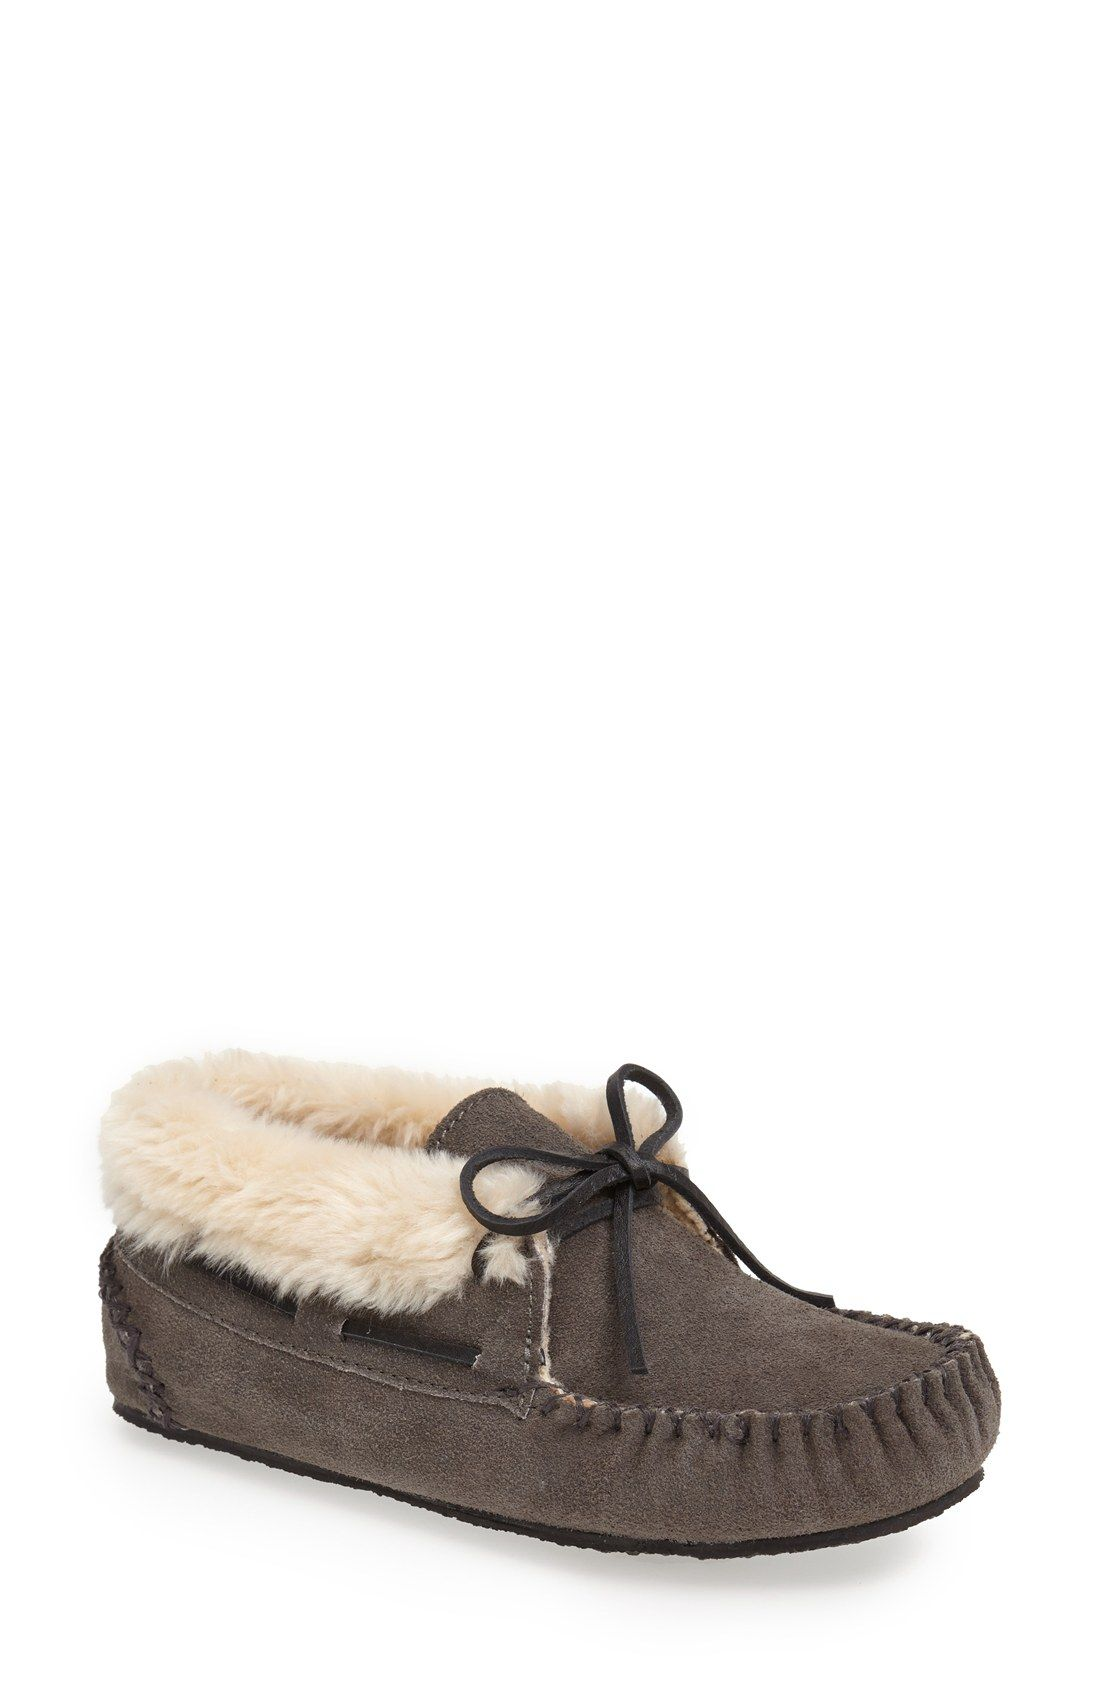 36995f997ea1 Adding this cozy slipper bootie to the wishlist.